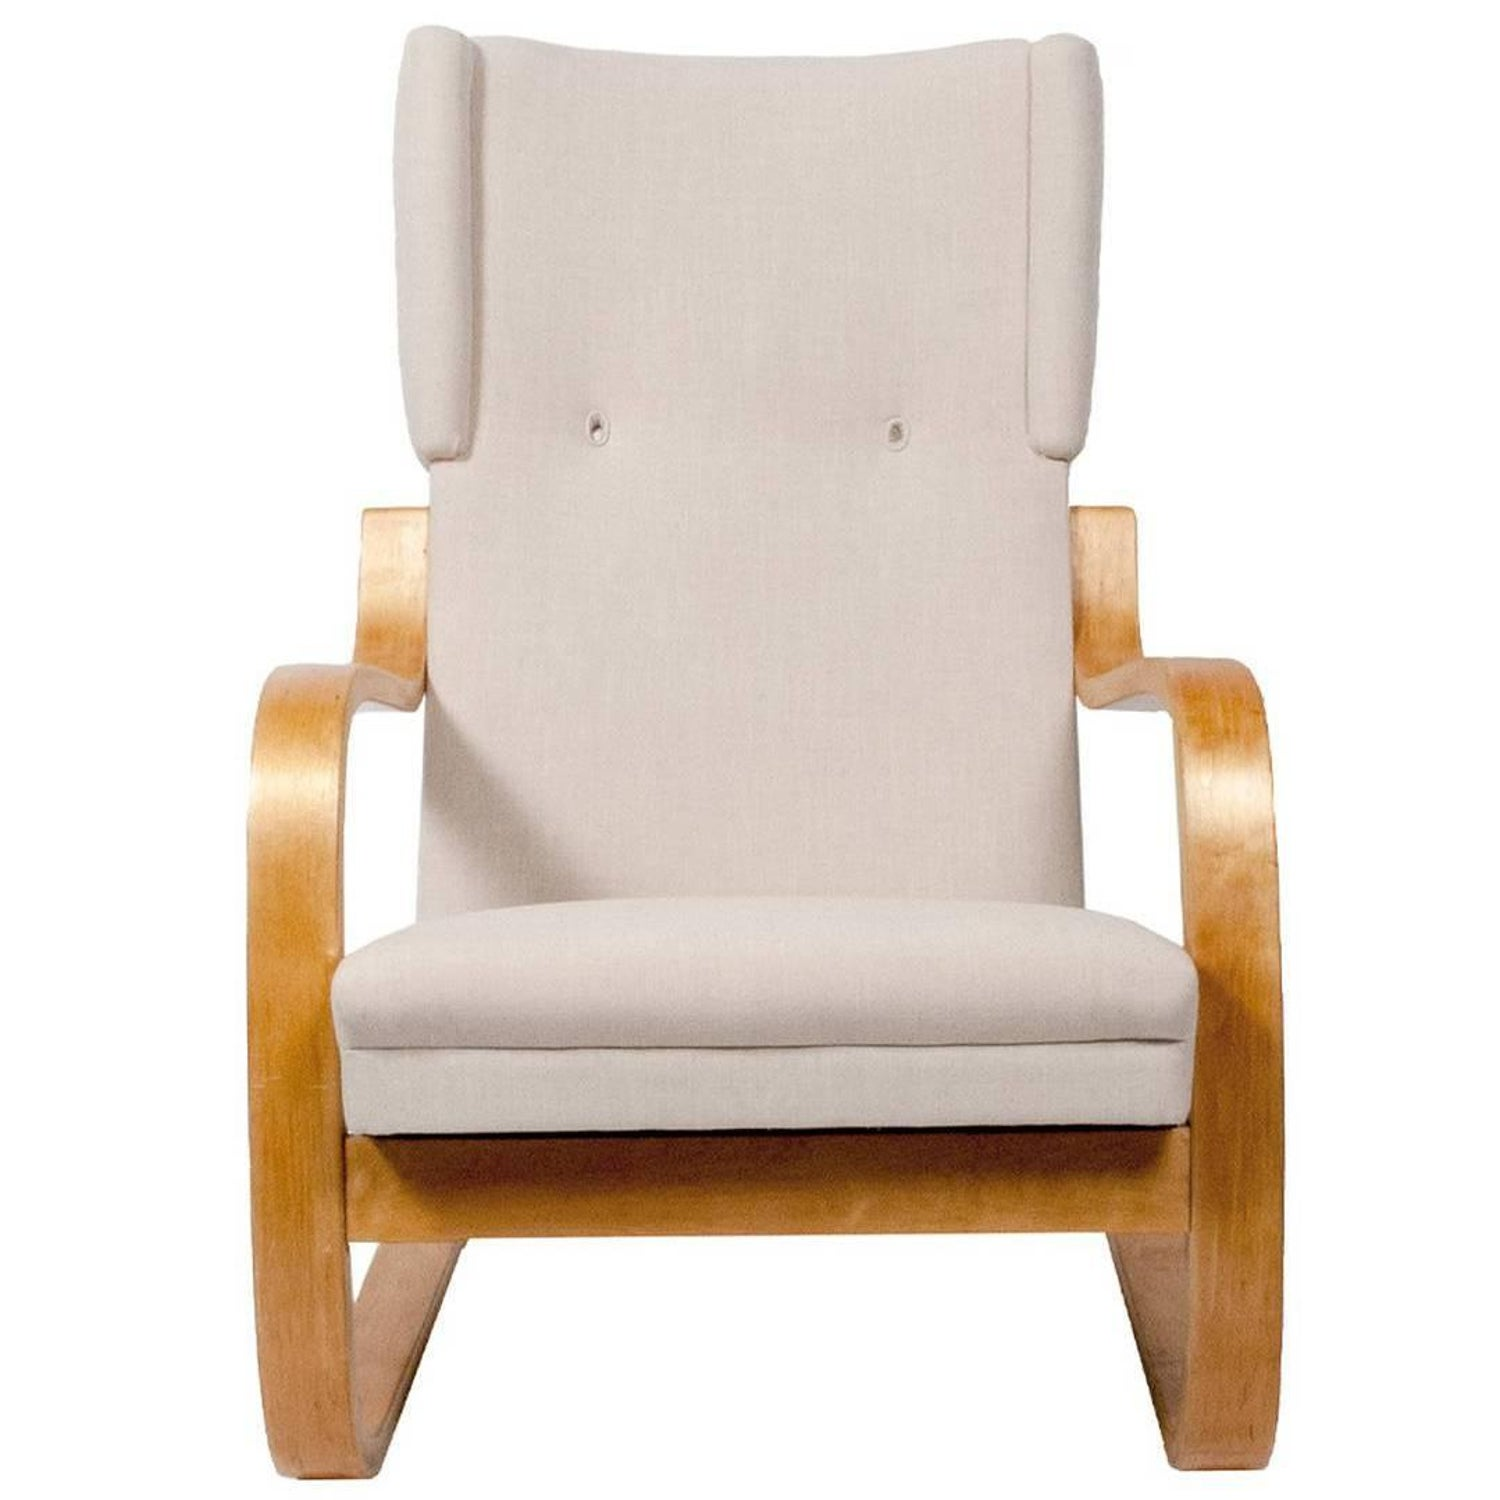 Alvar Aalto Model 36 401 High Back Lounge Chair For Sale at 1stdibs